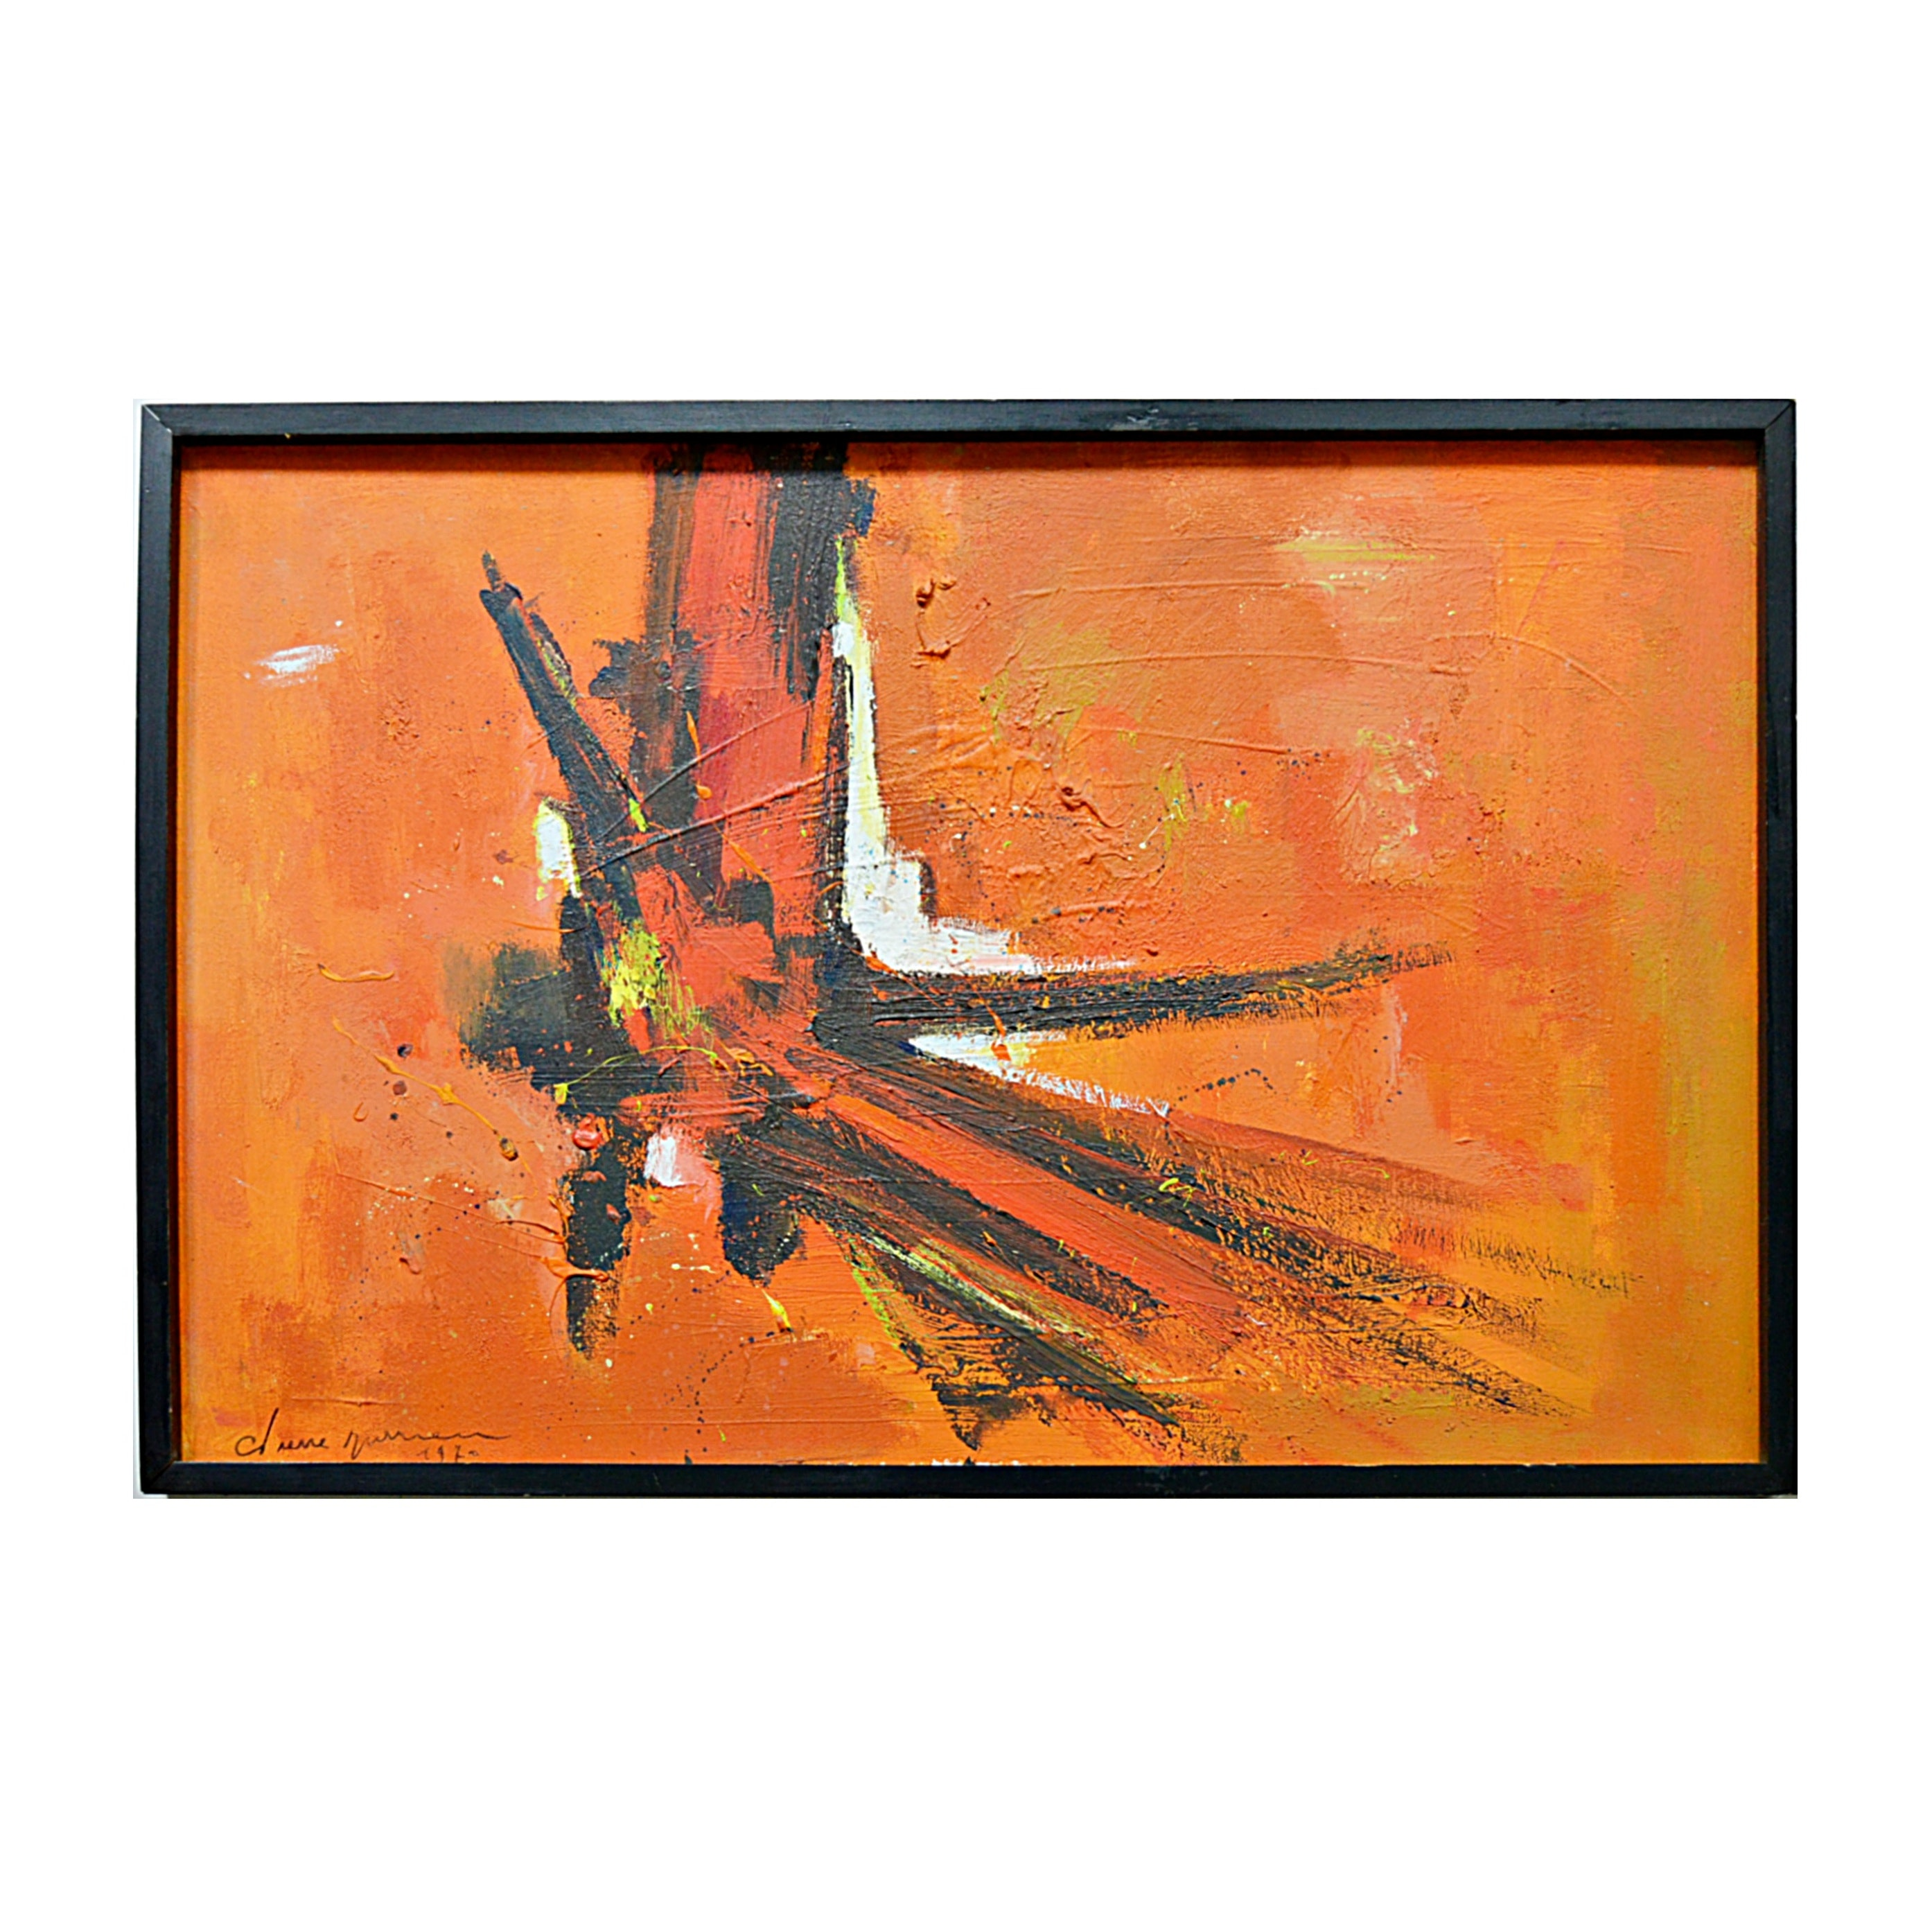 1970s Original Signed Abstract Expressionistic Oil on Canvas